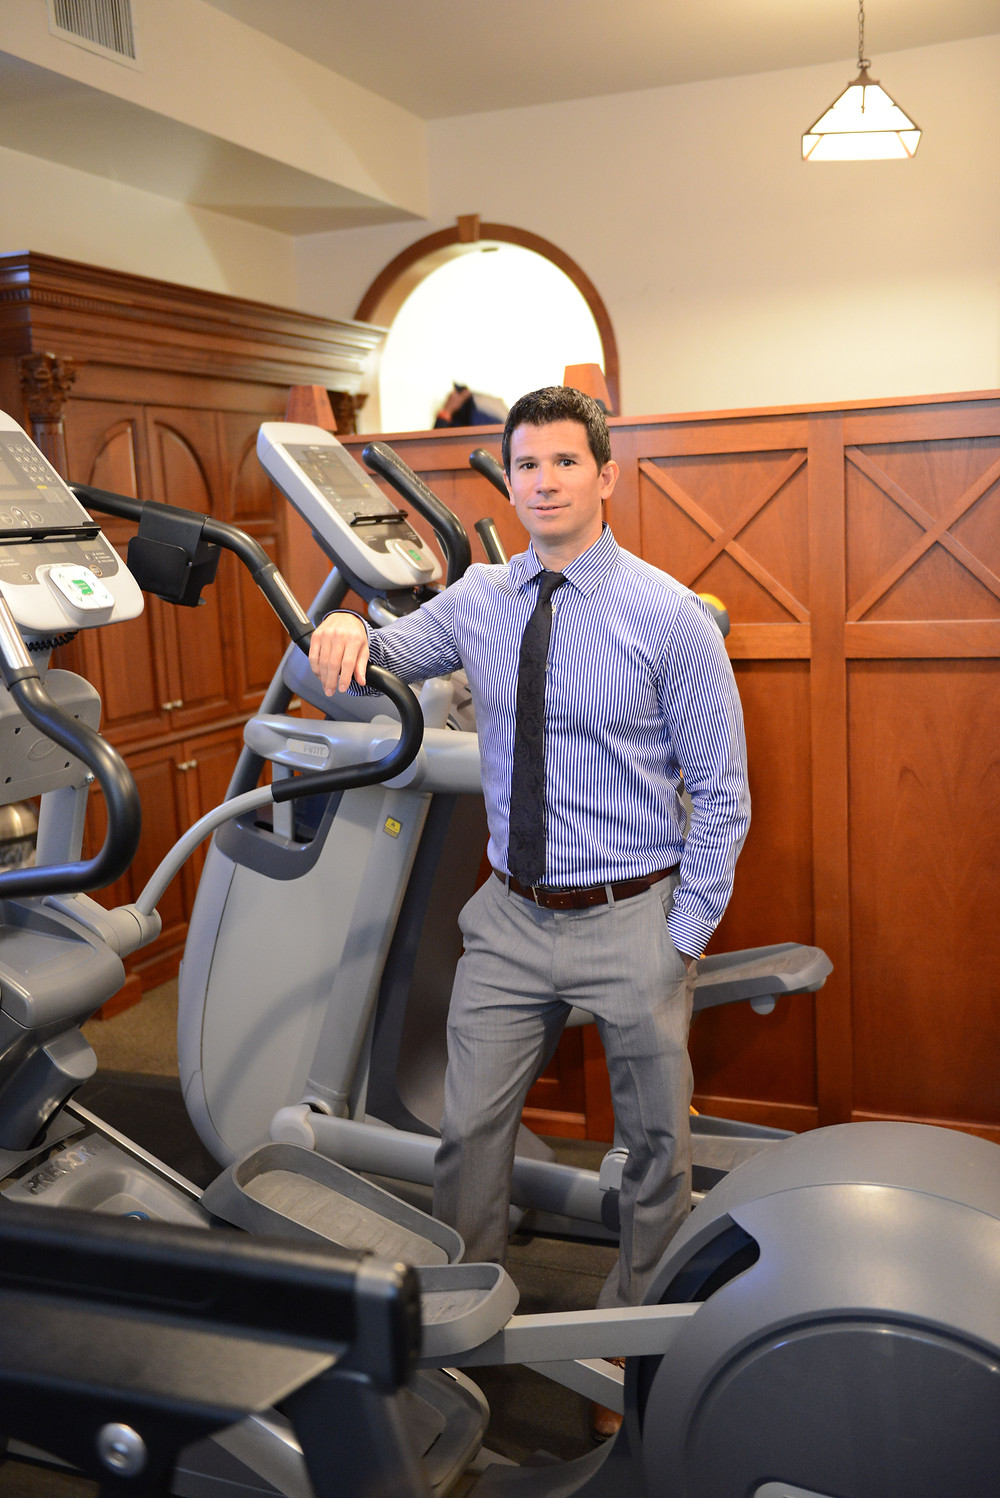 Physical Therapist Charles Polit